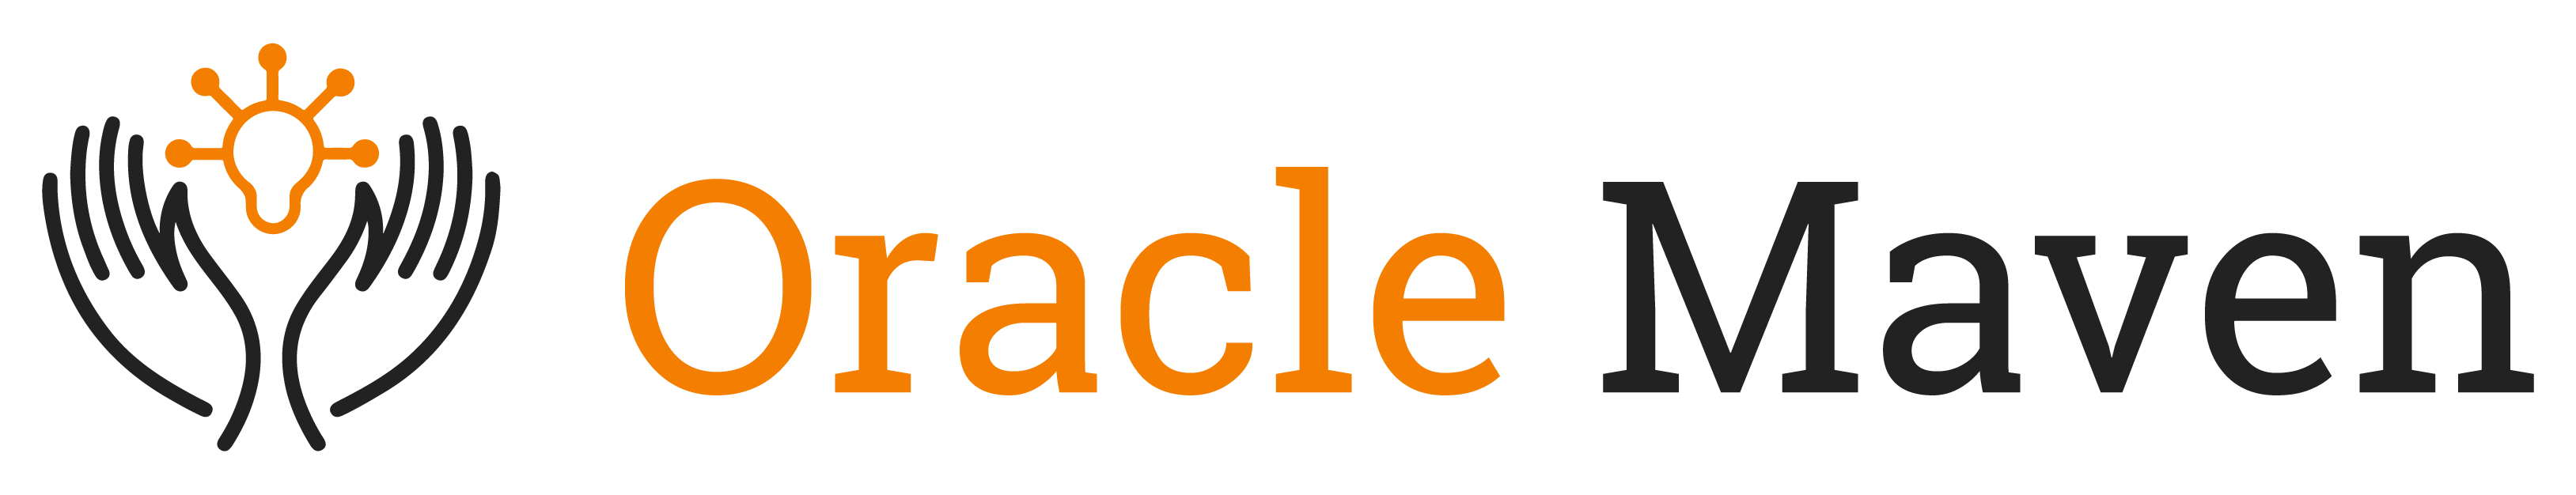 Oracle Maven